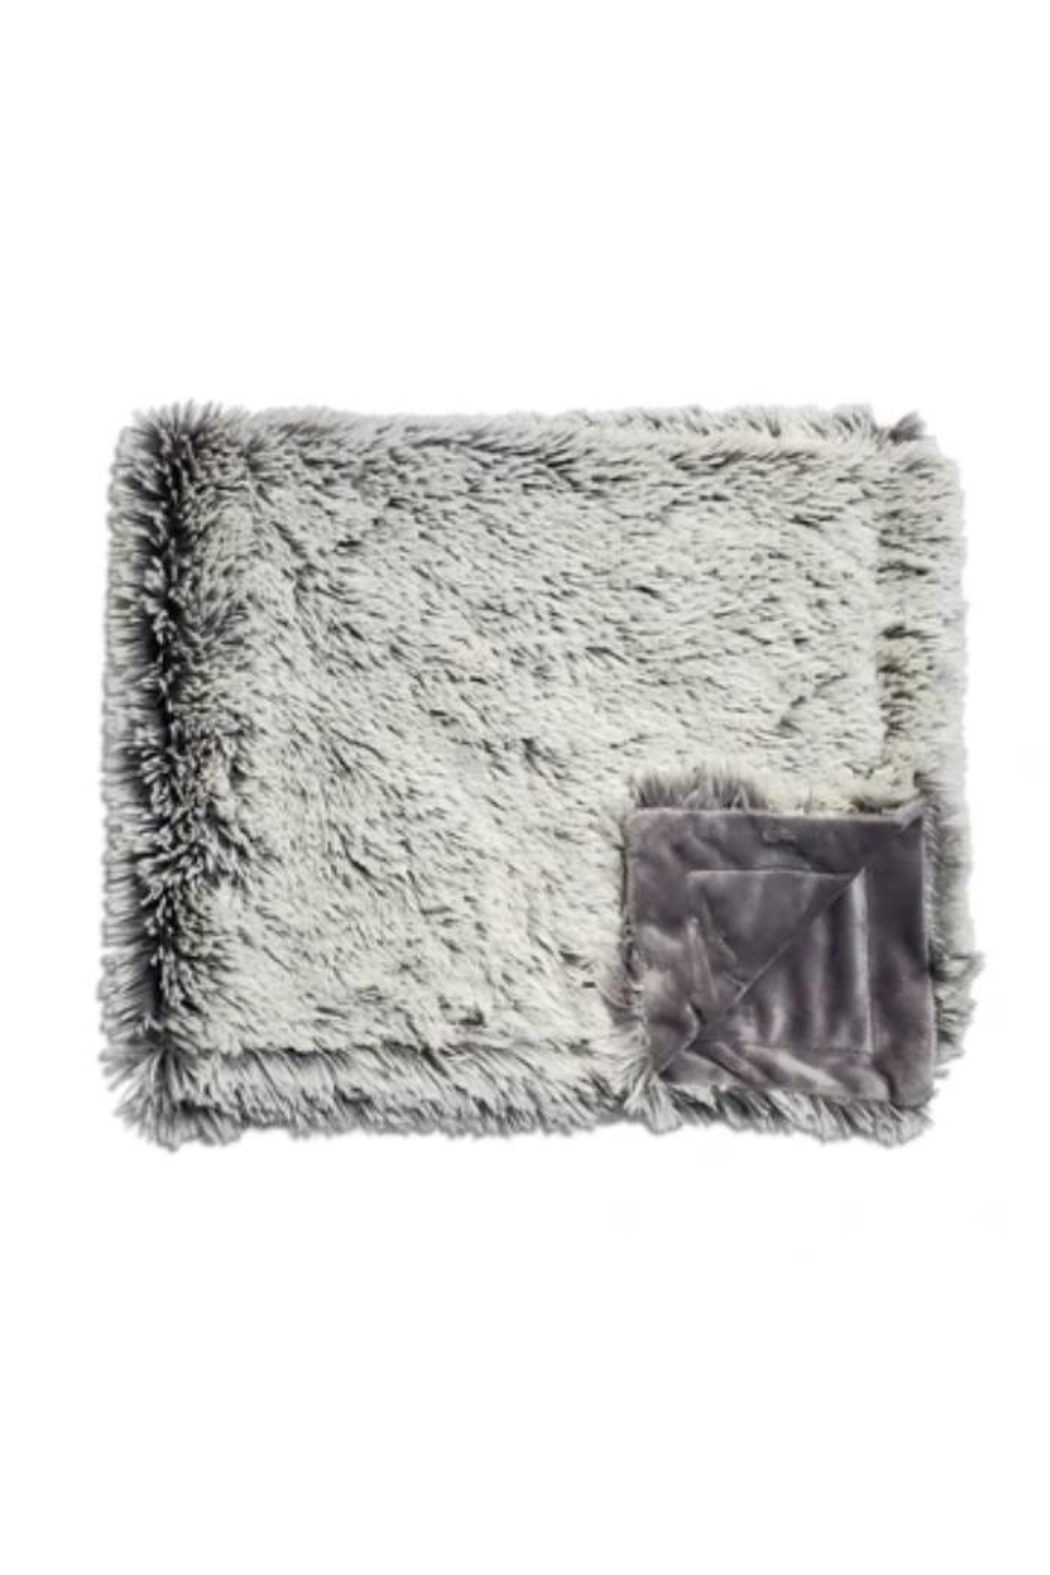 Winx+Blinx Shaggy Frosted Charcoal Grey Mini Minky Blanket (13 X 12.5 Inches)for Newborn Baby Boys Girls Winter Swaddle - Main Image